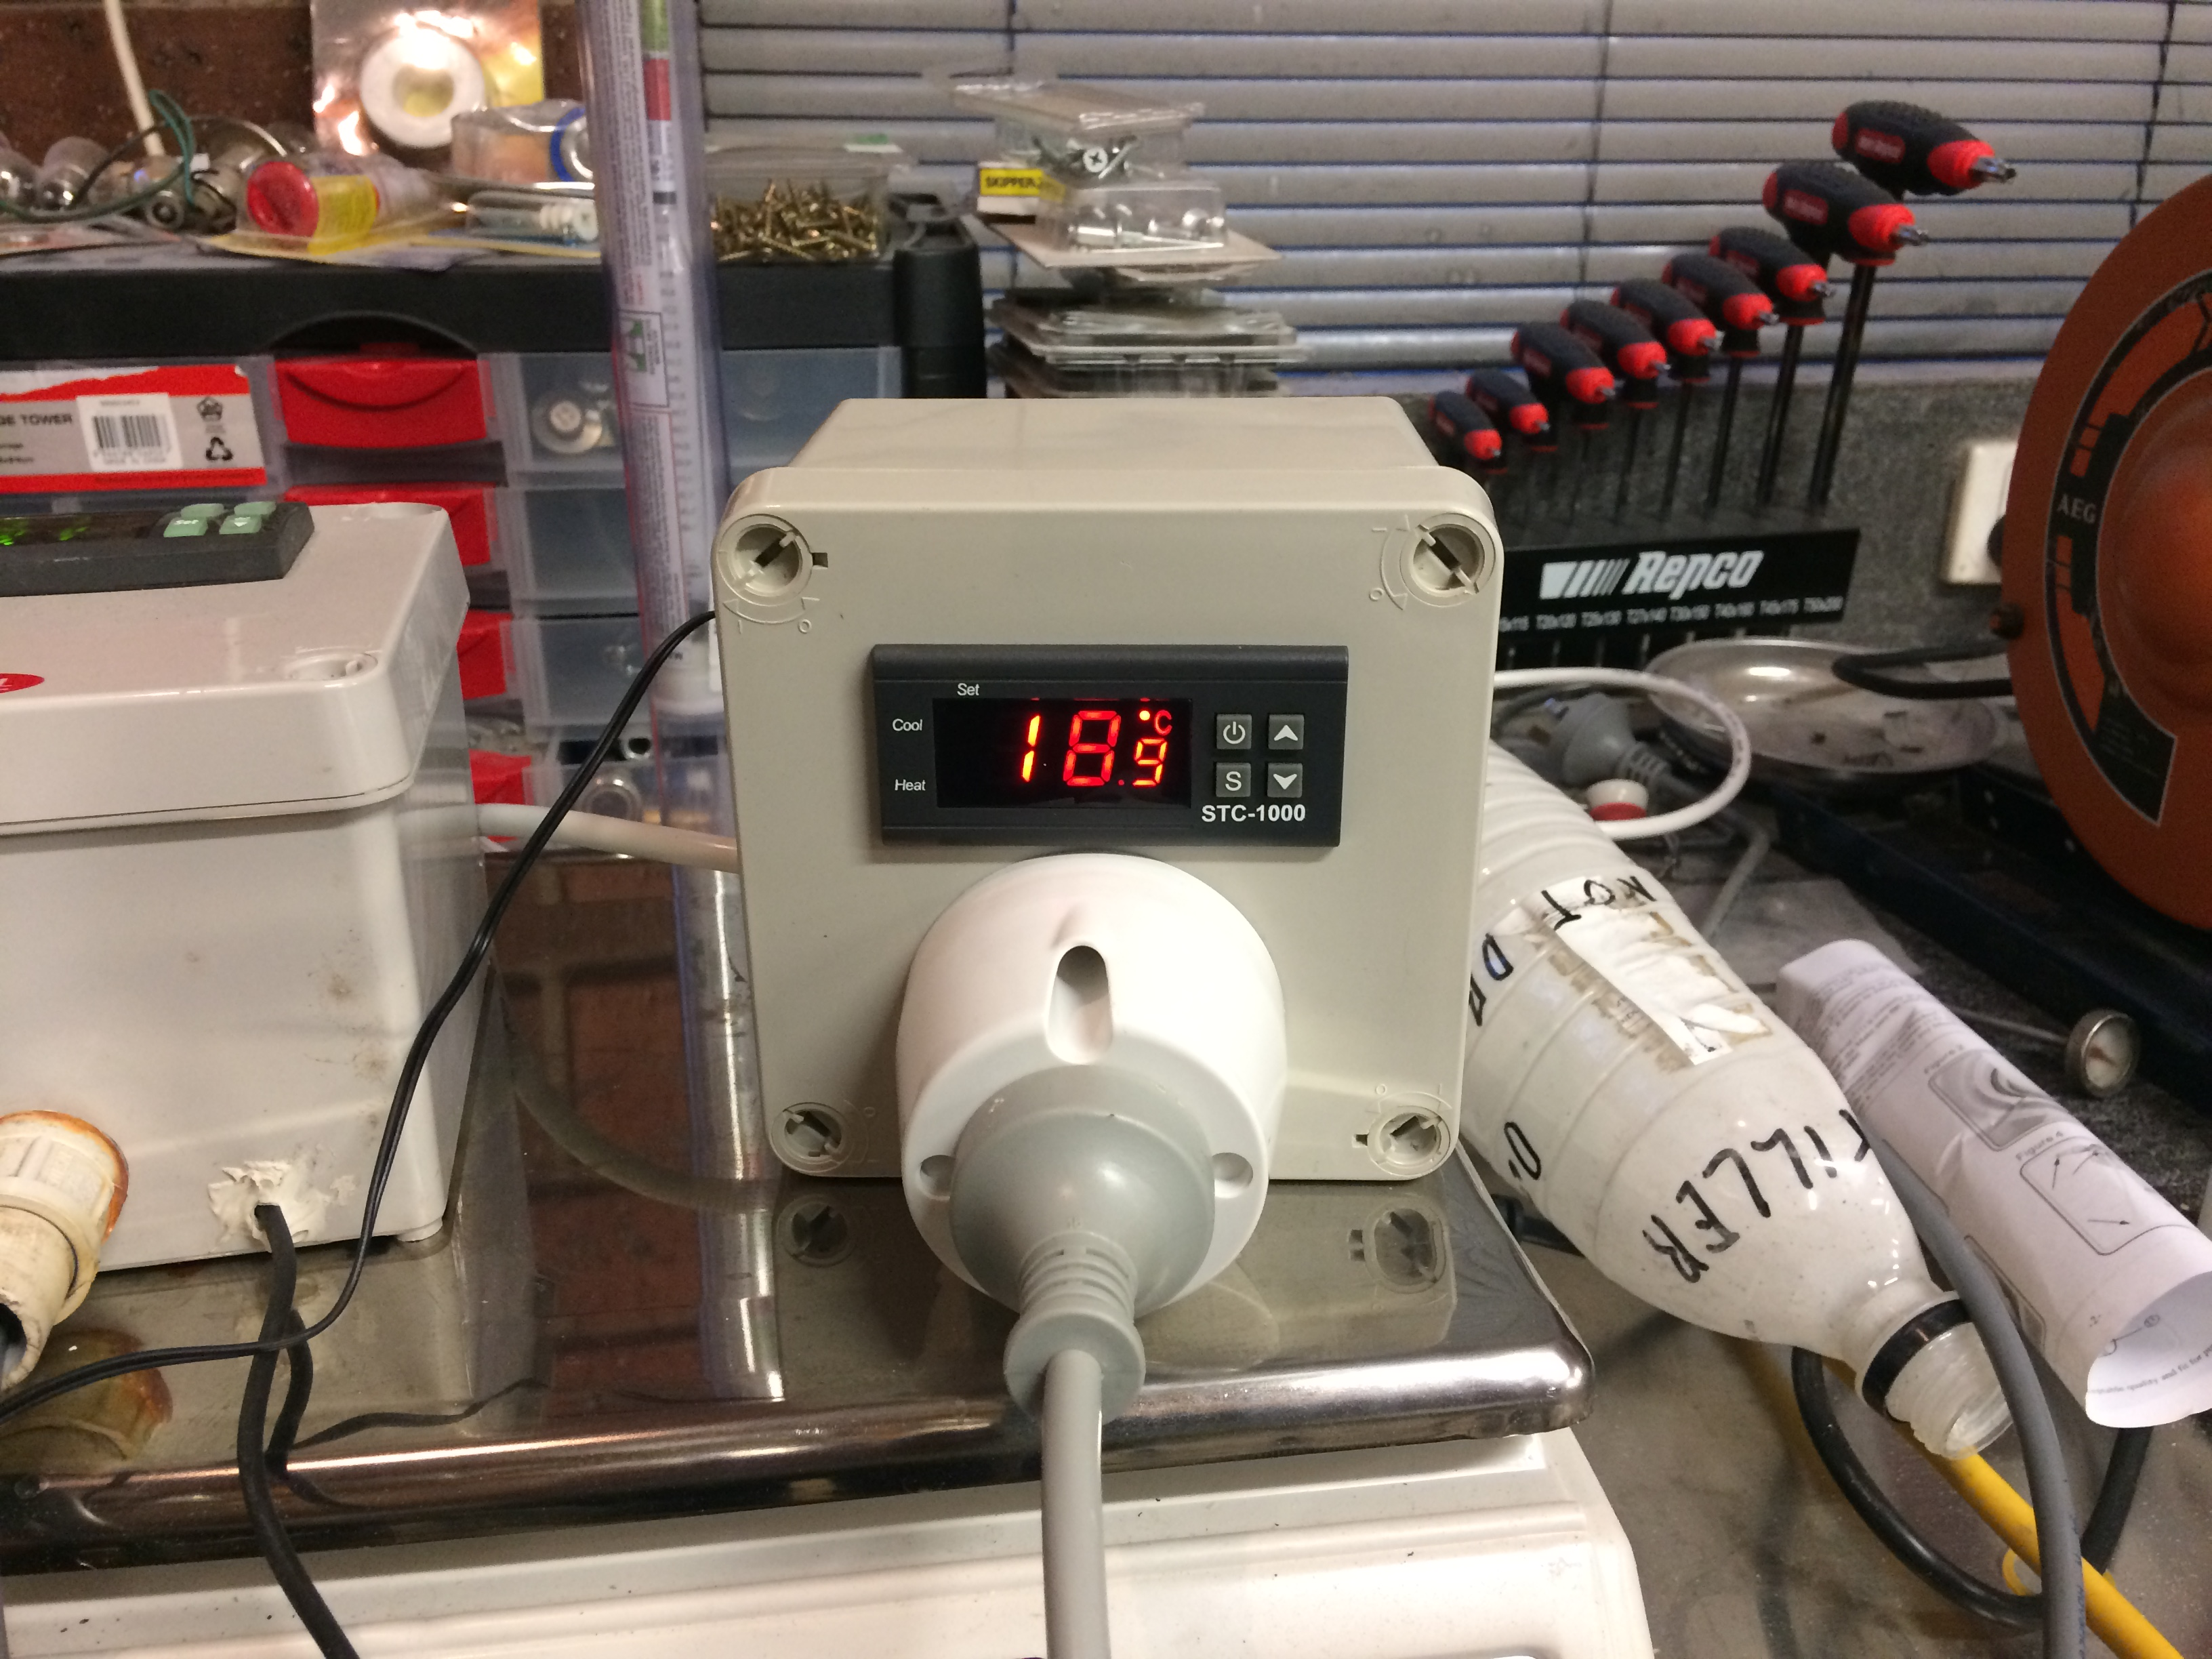 New To Brewing Got Question Stc1000 Fridge Problem Aussie Home Brewer Diy Homebrew Project Dual Stage Temperature Controller C8db750b 0dc6 46fa 9343 5901a55a1a42jpeg